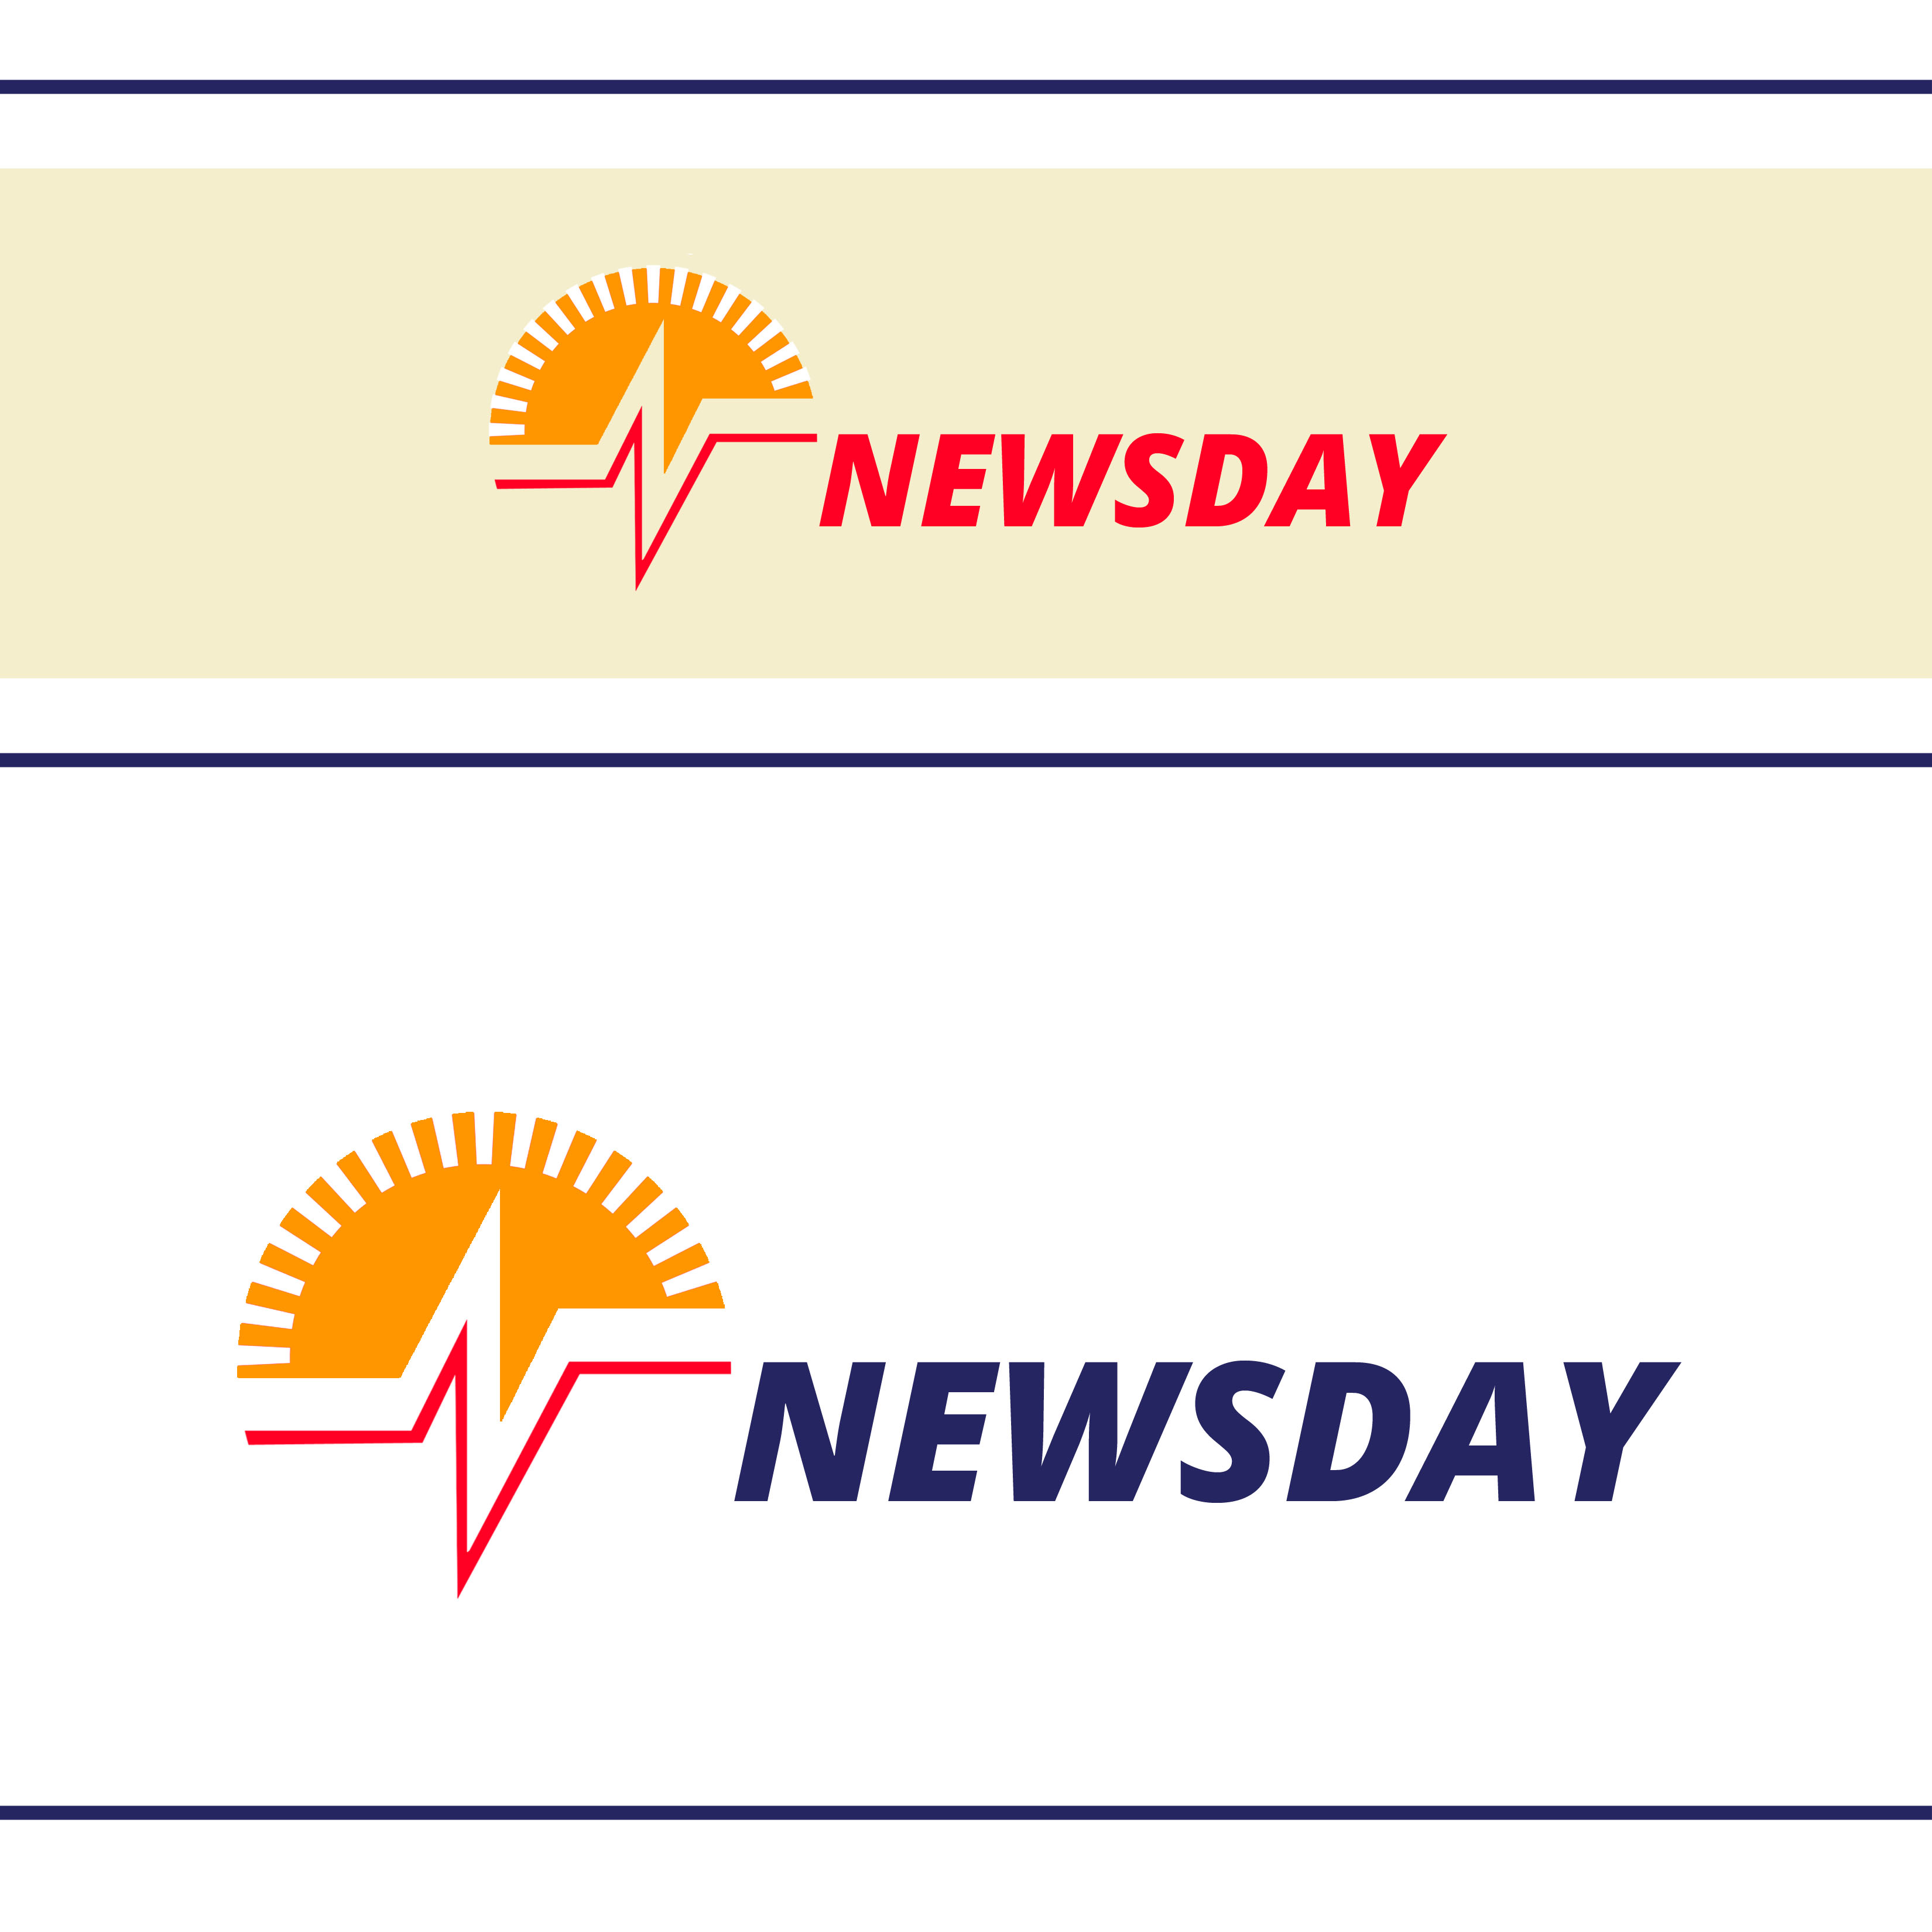 Logo Design by Allan Esclamado - Entry No. 11 in the Logo Design Contest Artistic Logo Design for Newsday.